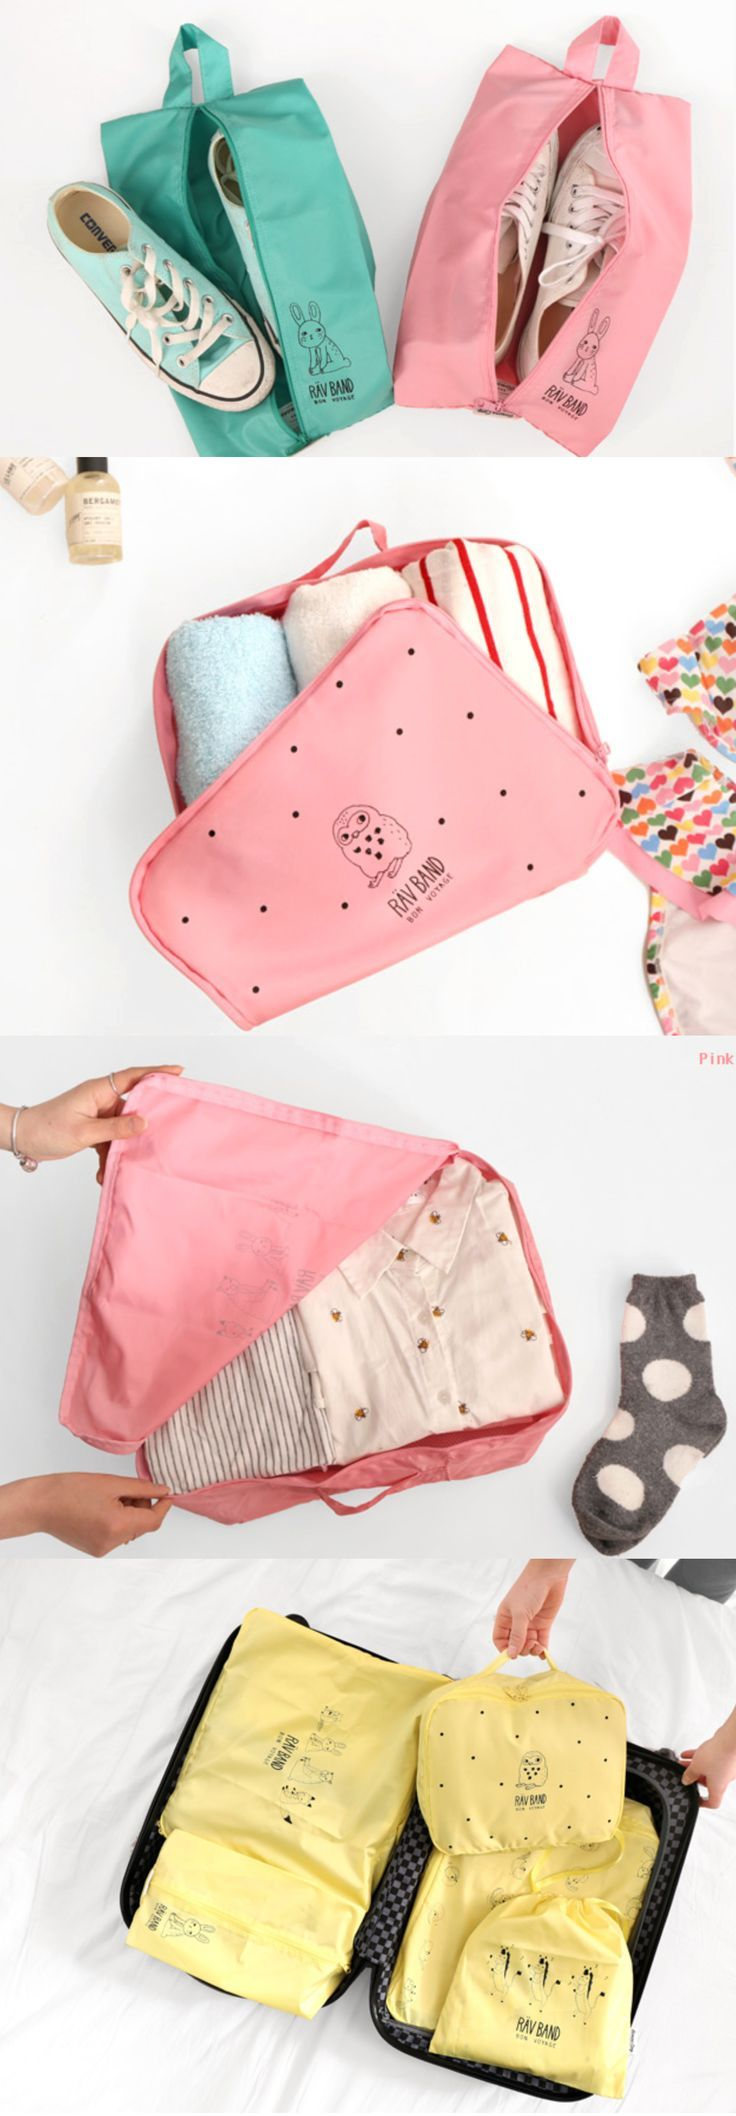 The Rav Band Travel Pouch Set is a simple, cute, and useful travel pouch set for your travel! You could possibly store clothes, au more conveniently and easily